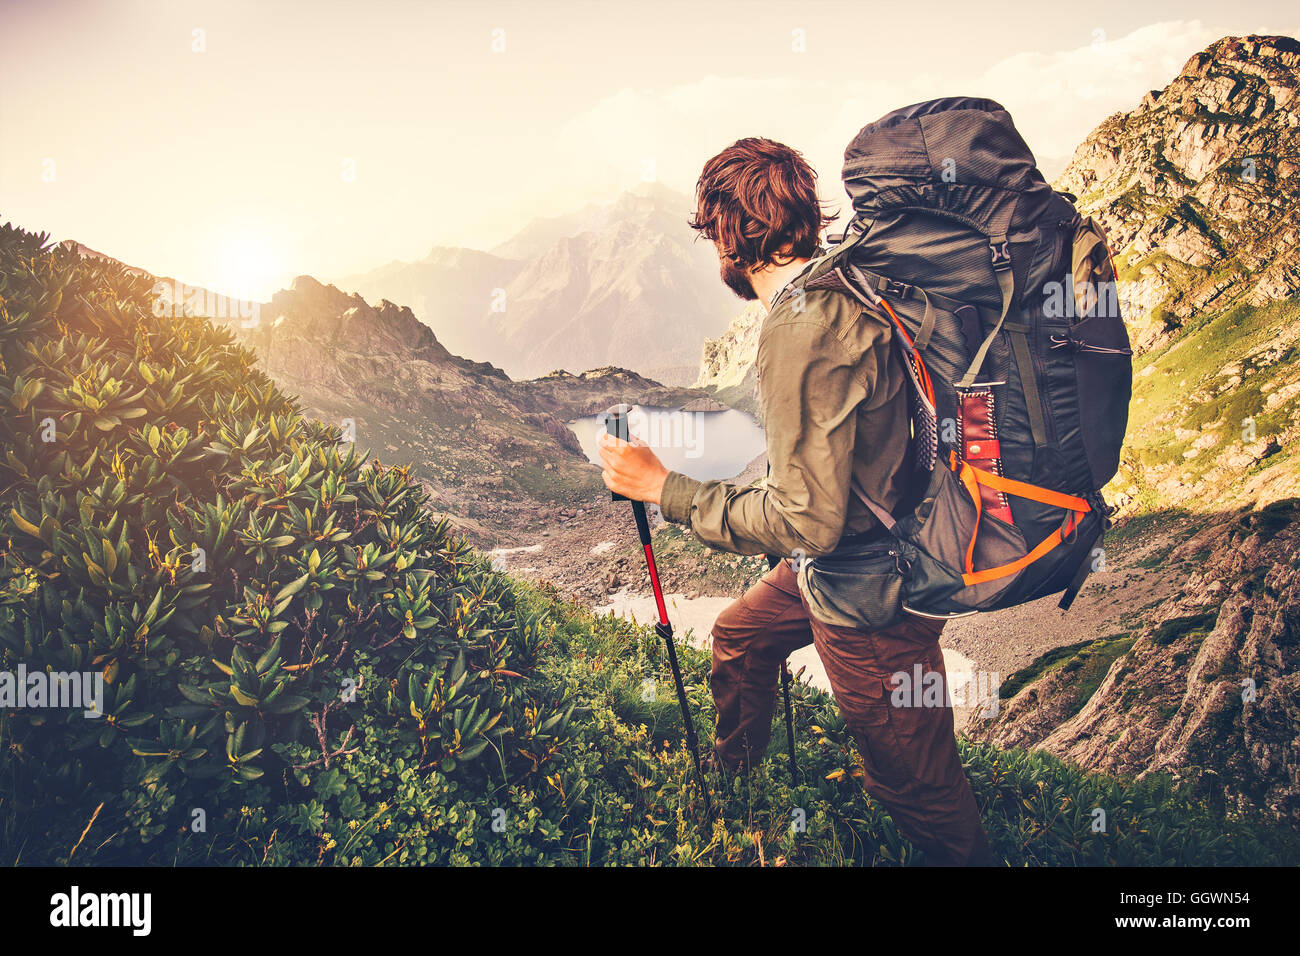 Man Traveler with backpack mountaineering Travel Lifestyle concept lake and mountains on background Summer expedition - Stock Image